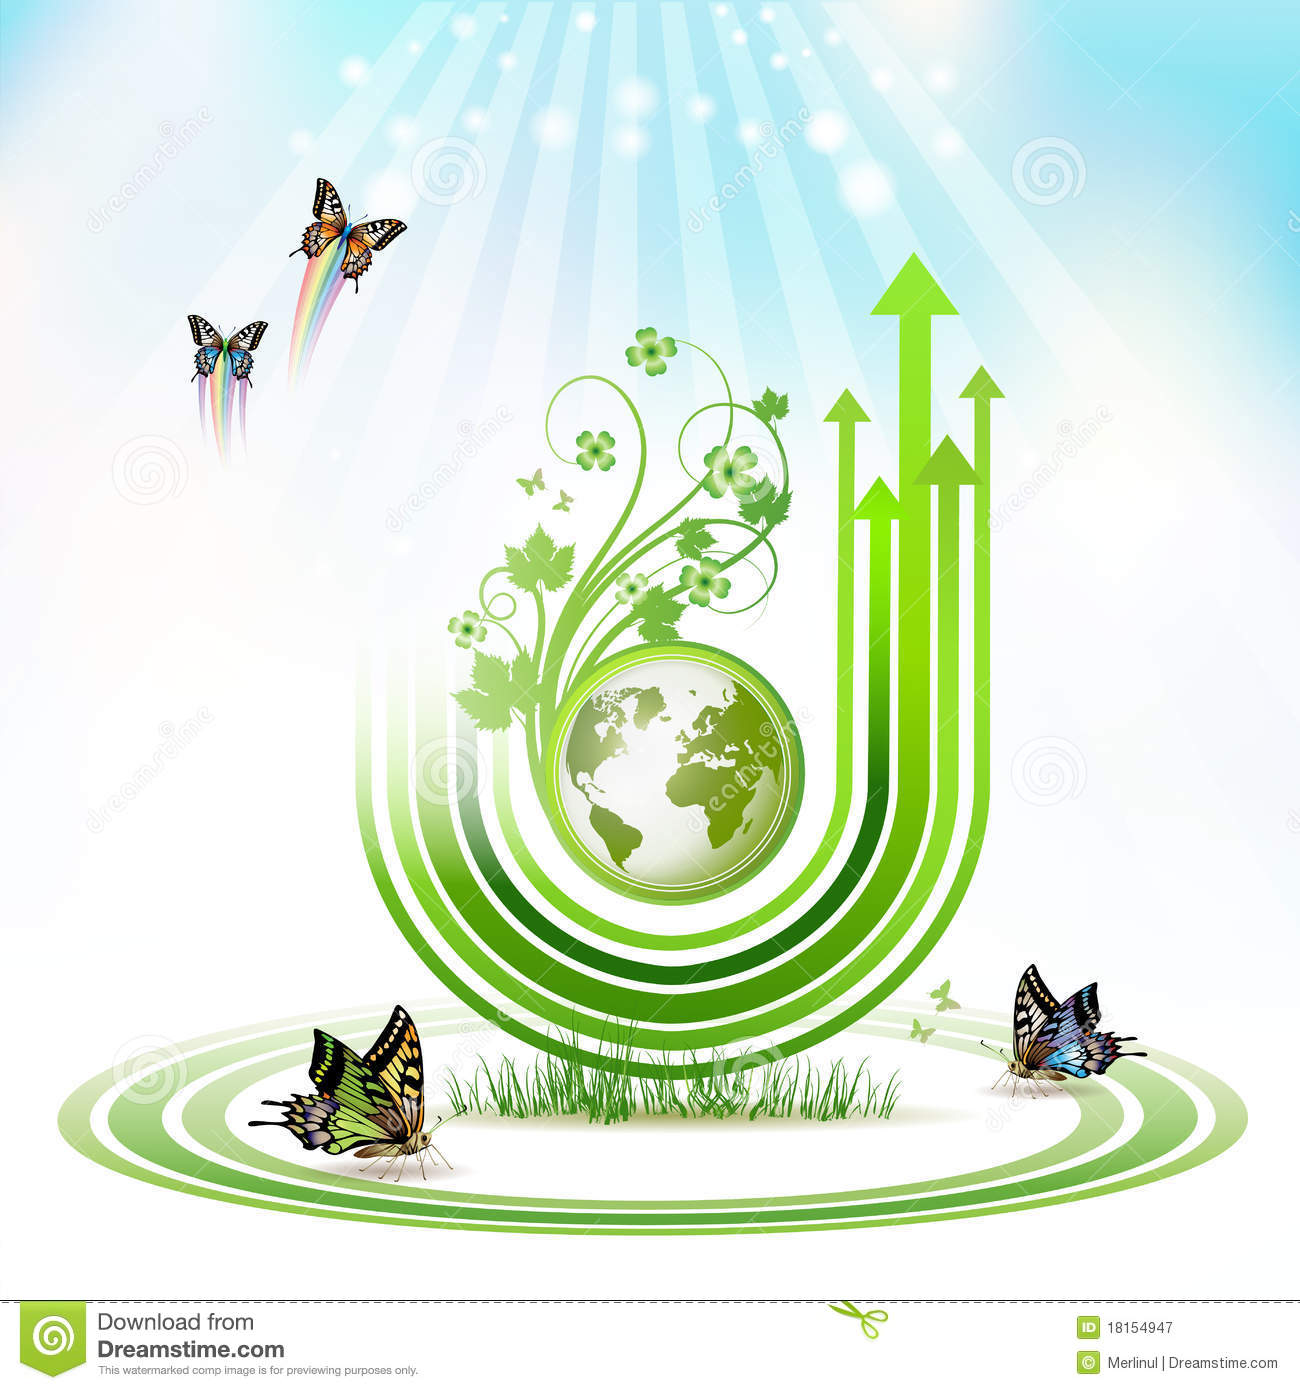 Green Earth Royalty Free Stock Photography - Image: 18154947